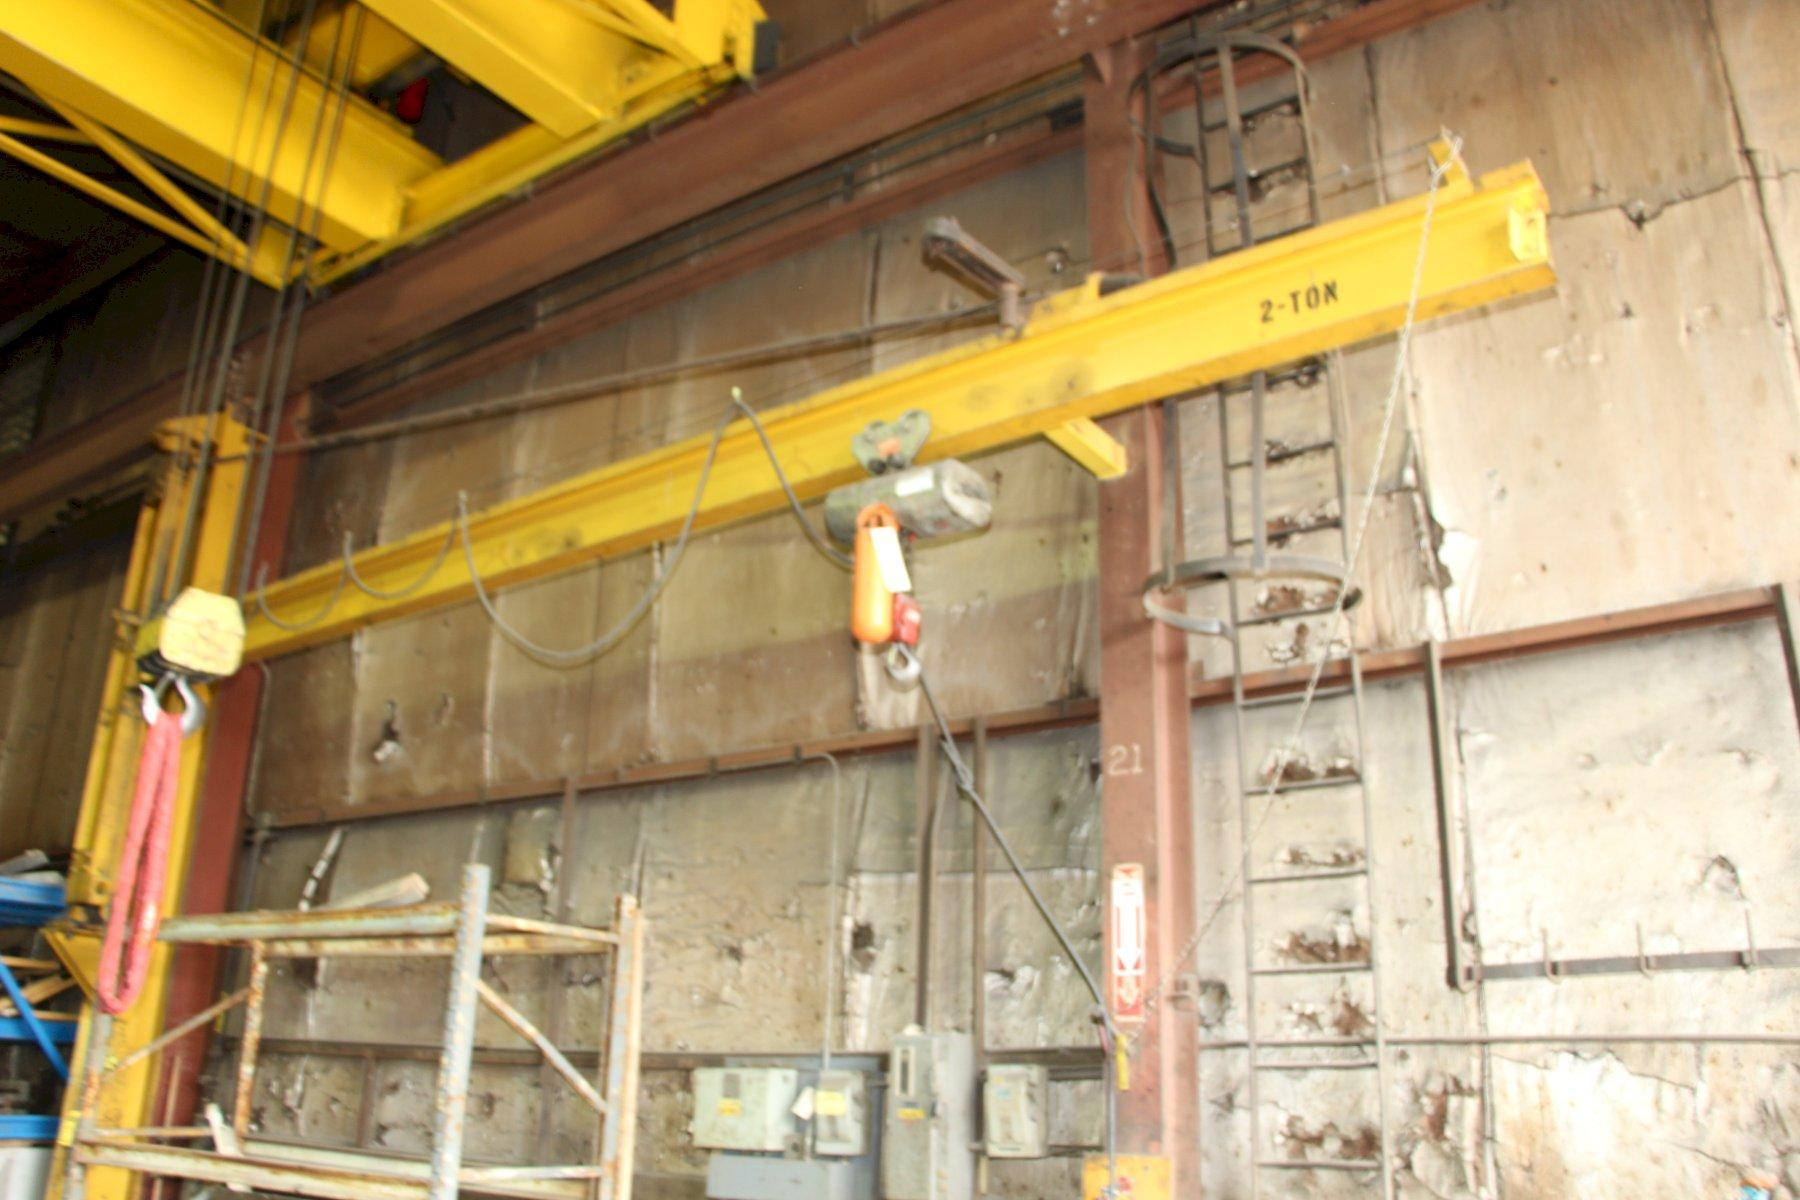 2 TON C&M LOADSTAR POWER CHAIN HOIST: STOCK #11234